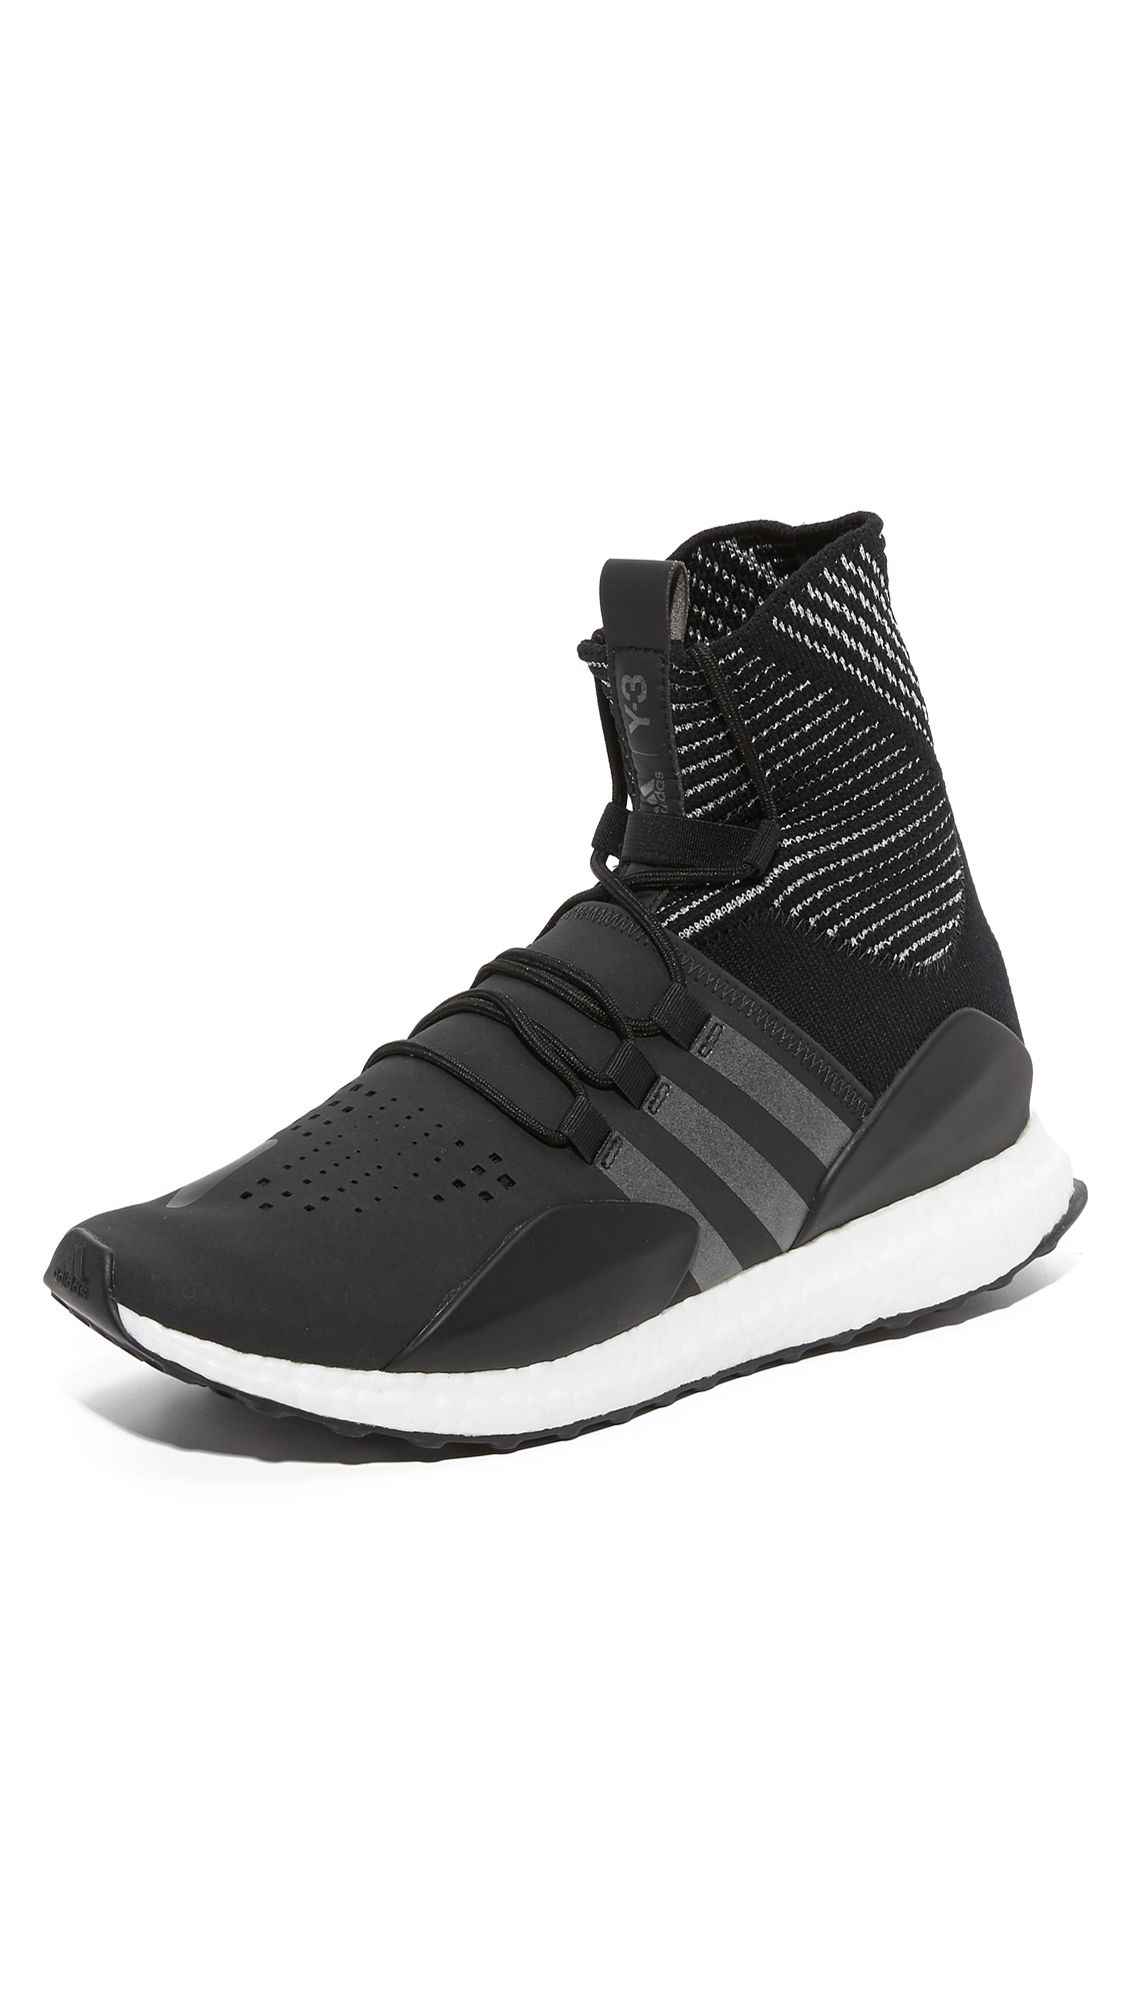 5e247a29e18c Y-3 Y-3S Approach Reflect Sneakers.  y-3  shoes  sneakers